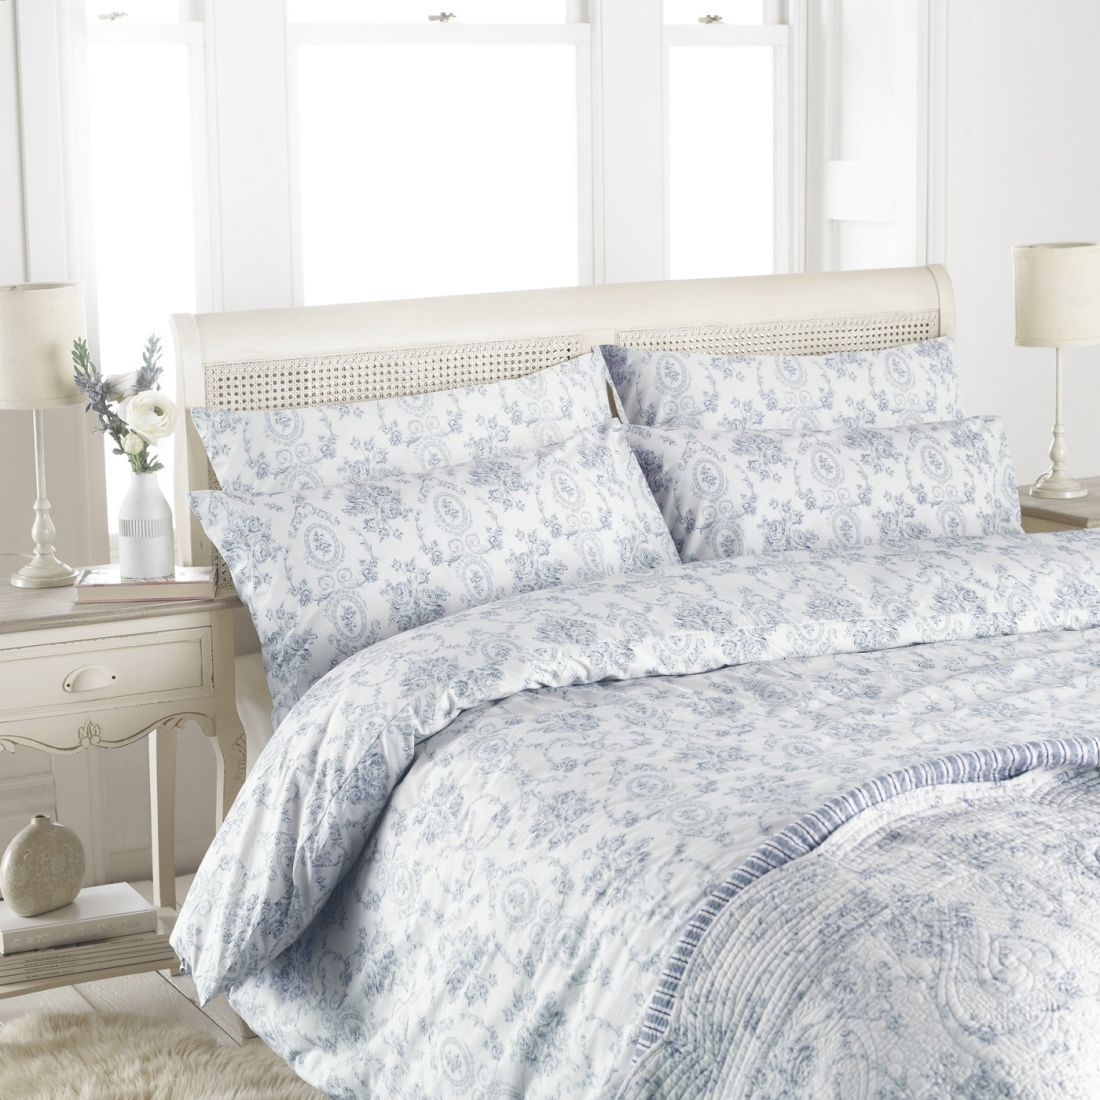 17the-french-bedrom-co_florence-blue-bed-linen-set-lifestyle.jpg